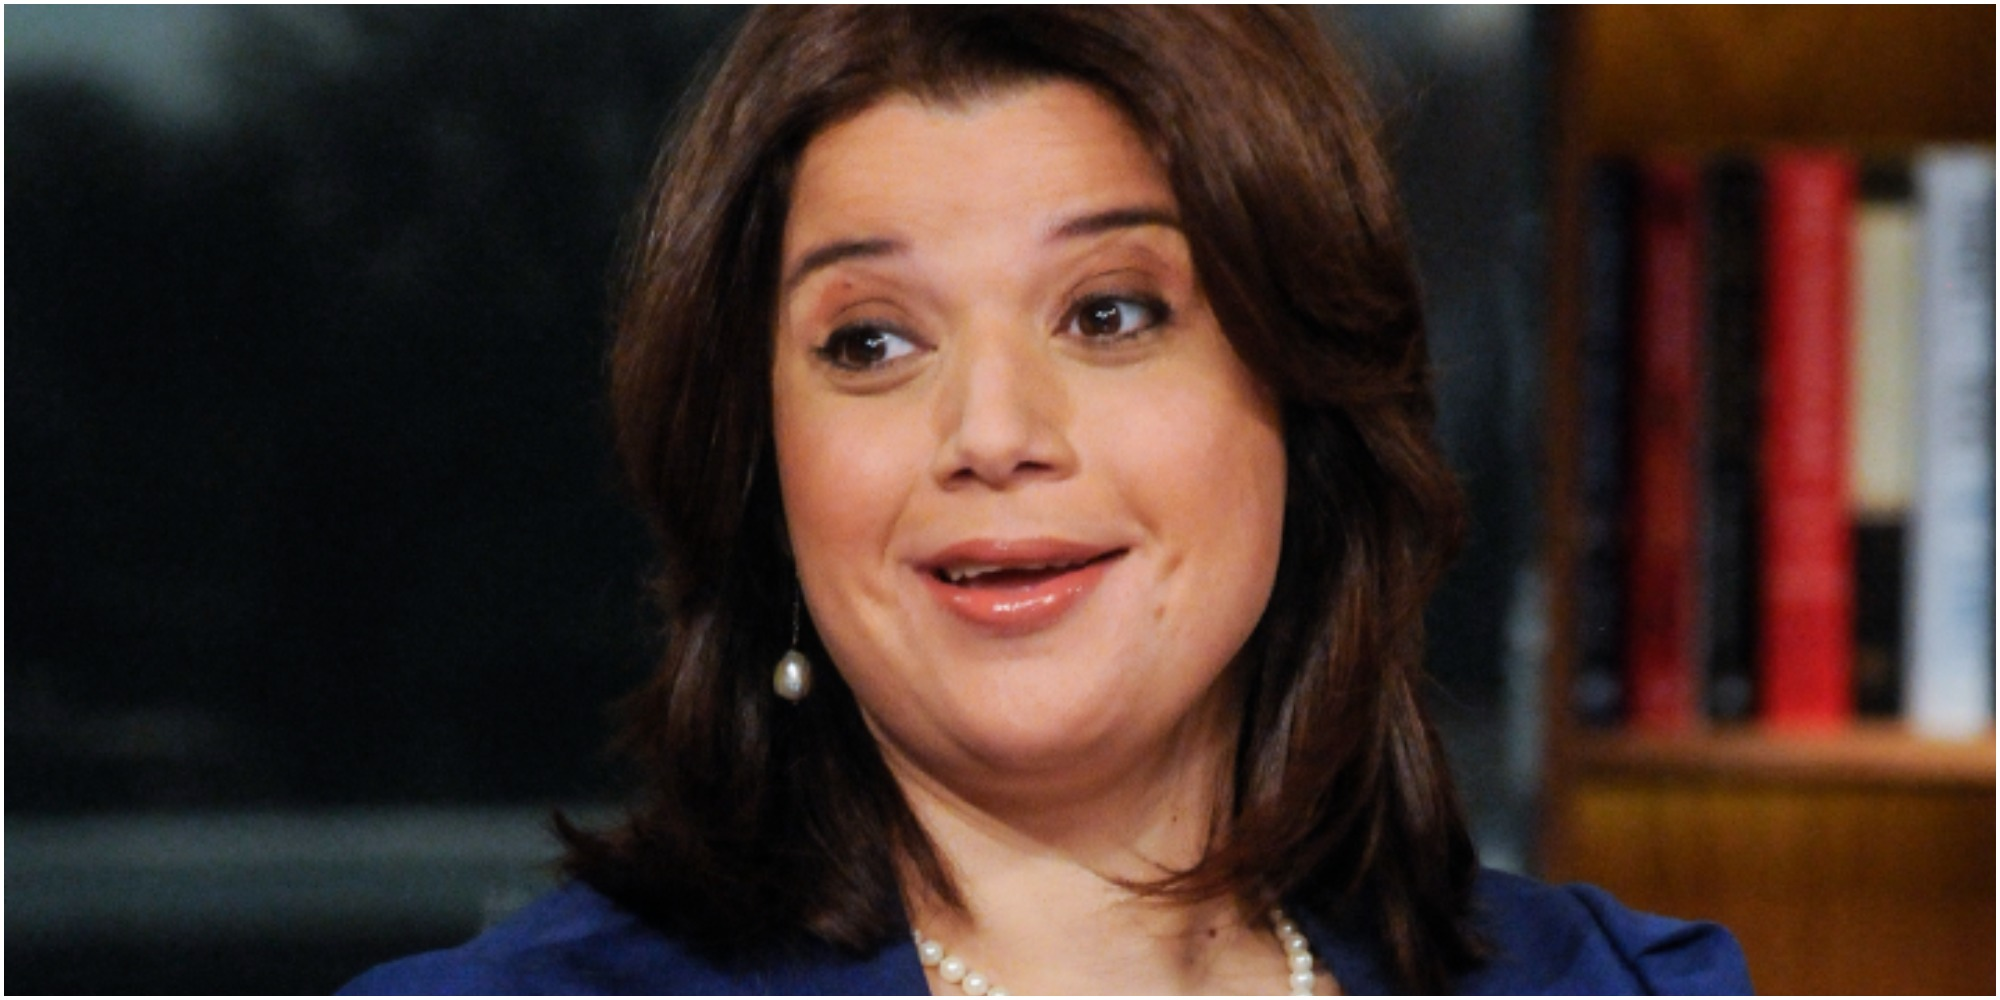 Ana Navarro is photographed as part of a panel discussion.